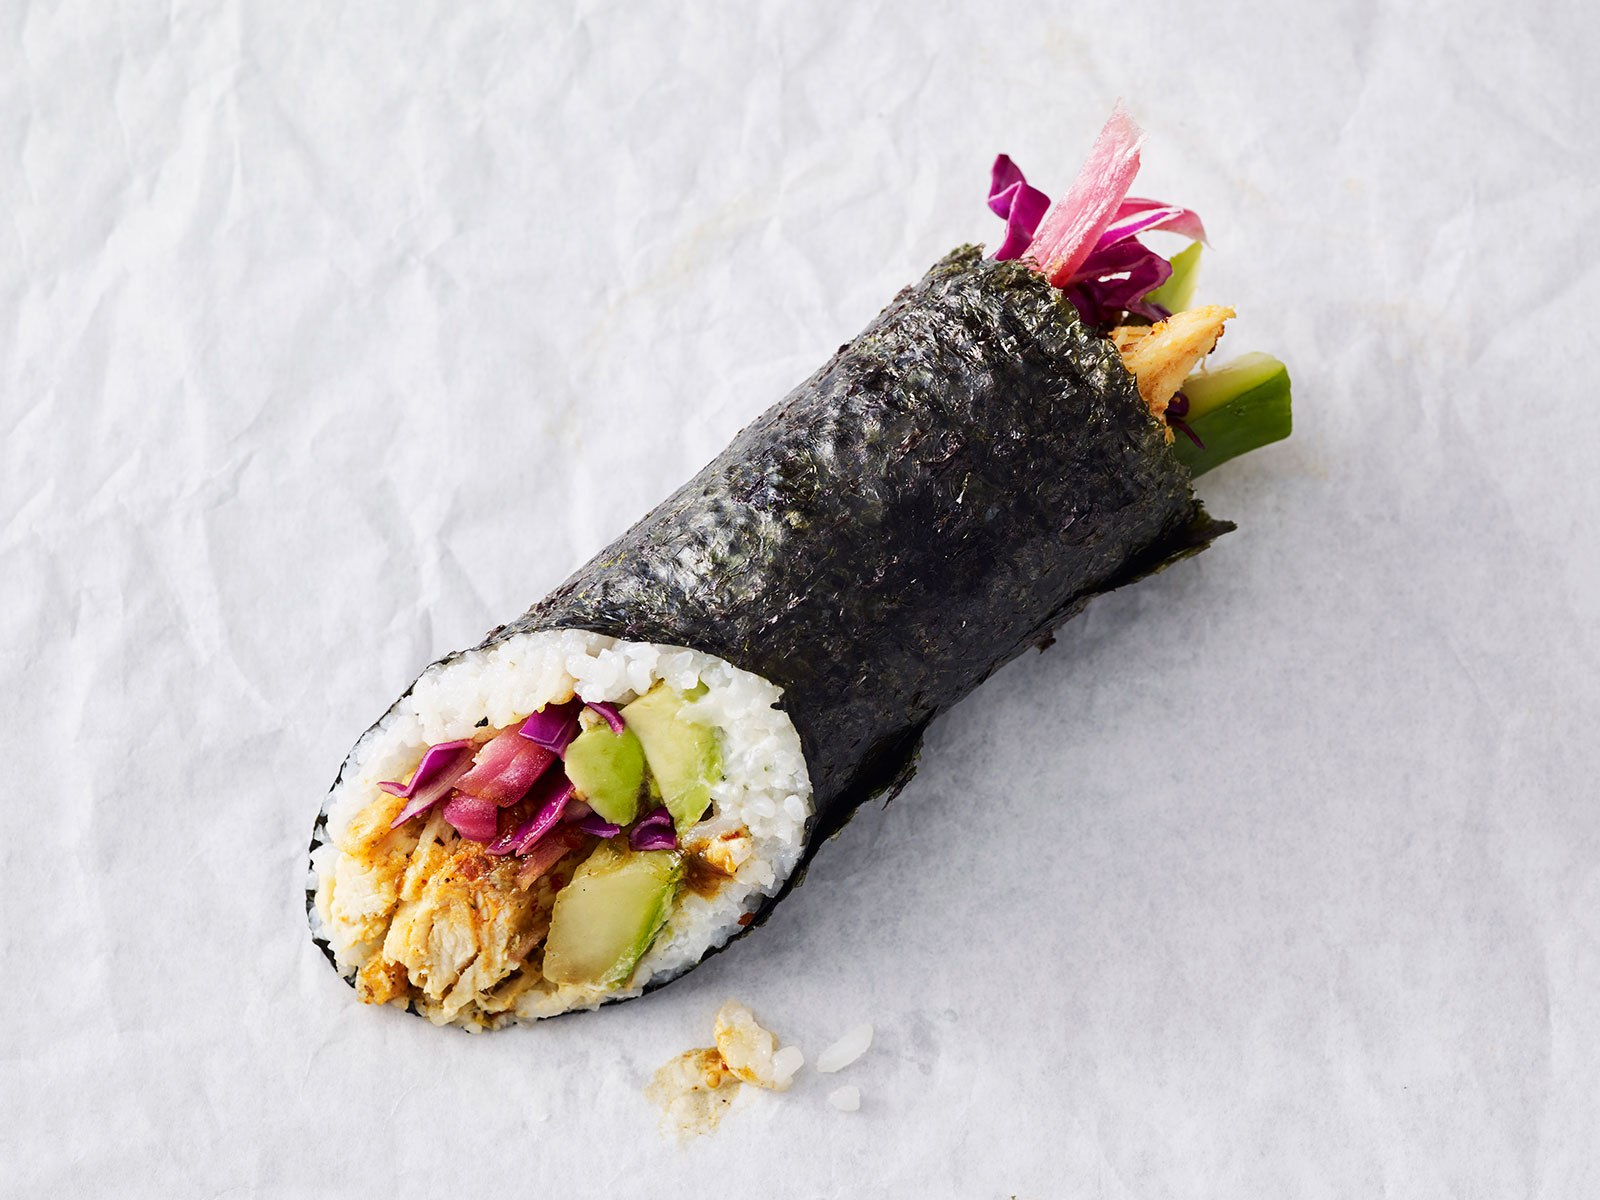 Sushi Burritos Now? No Thanks.